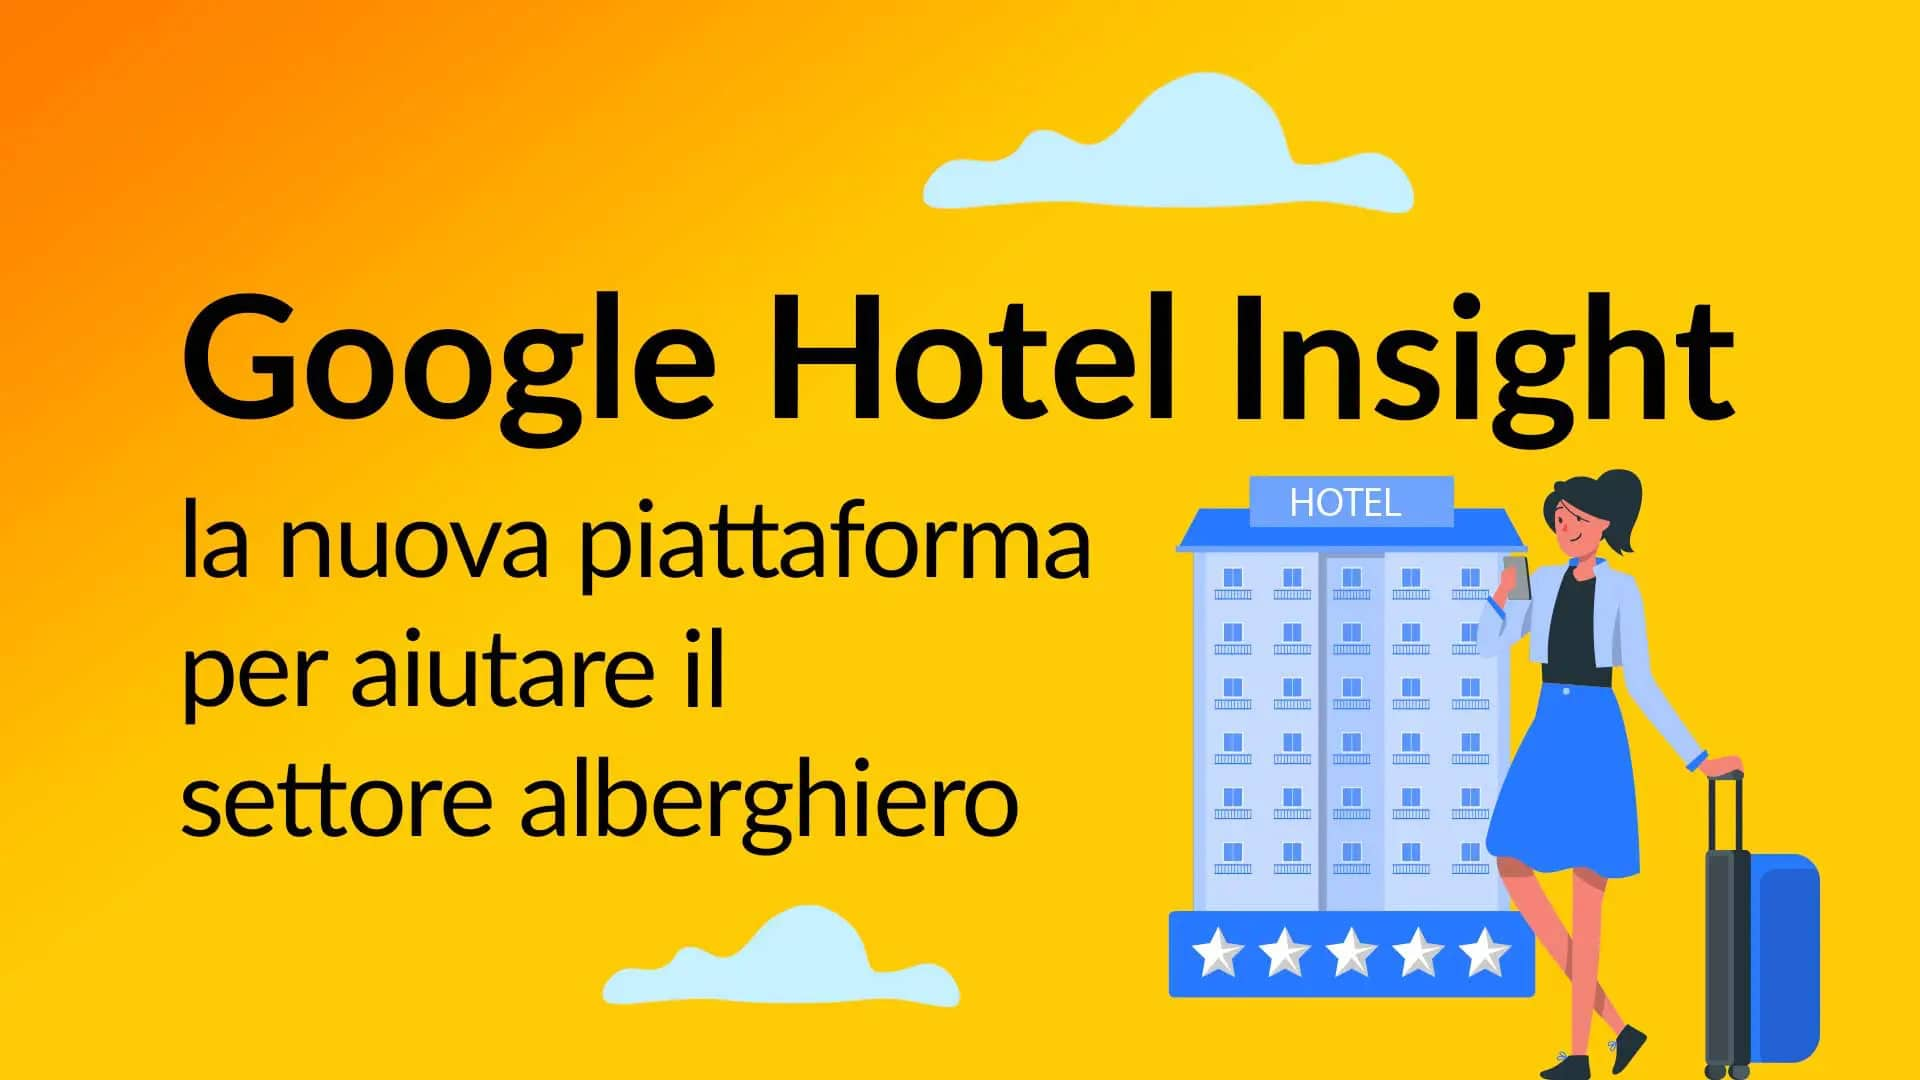 Google Hotel Insight